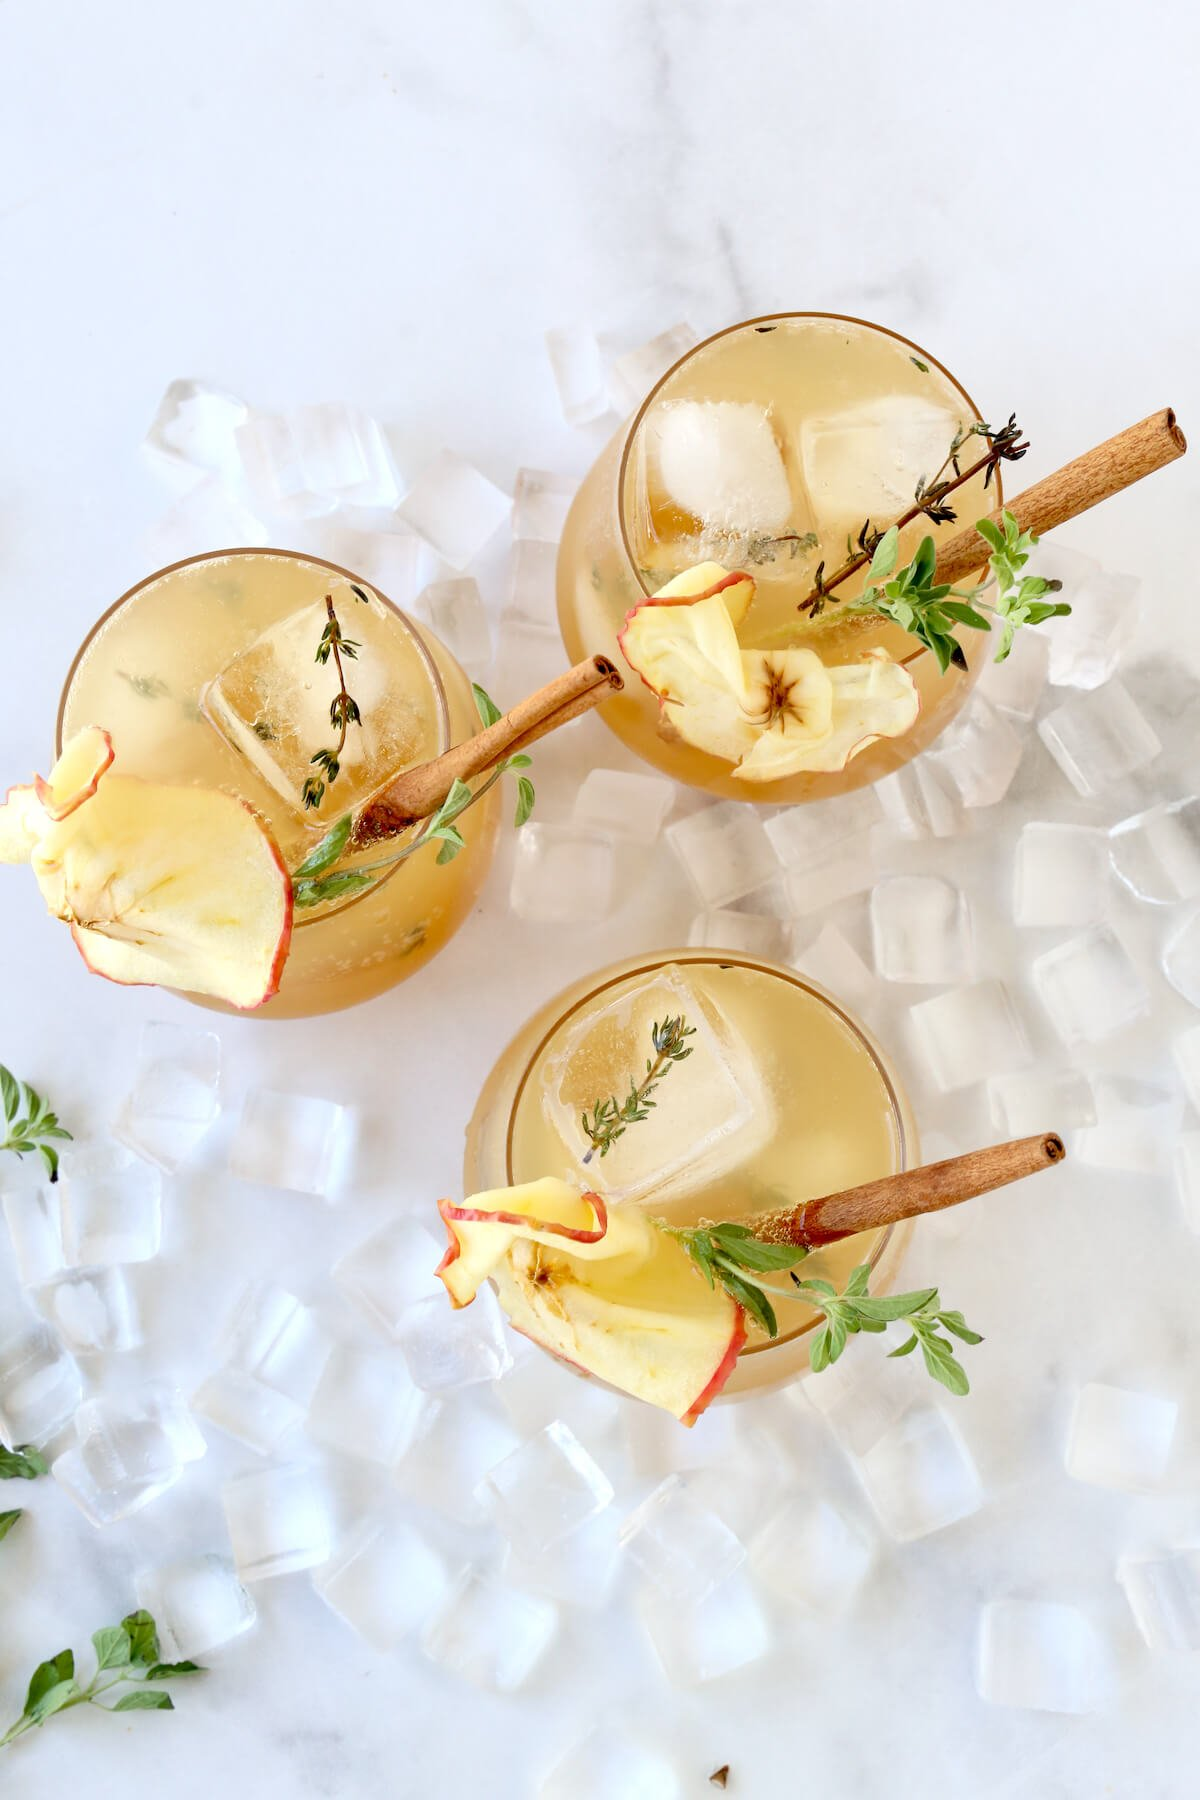 Three glasses filled with bourbon, apple cider, simple syrup and sparkling water and garnished with a cinnamon stick and apples slice.